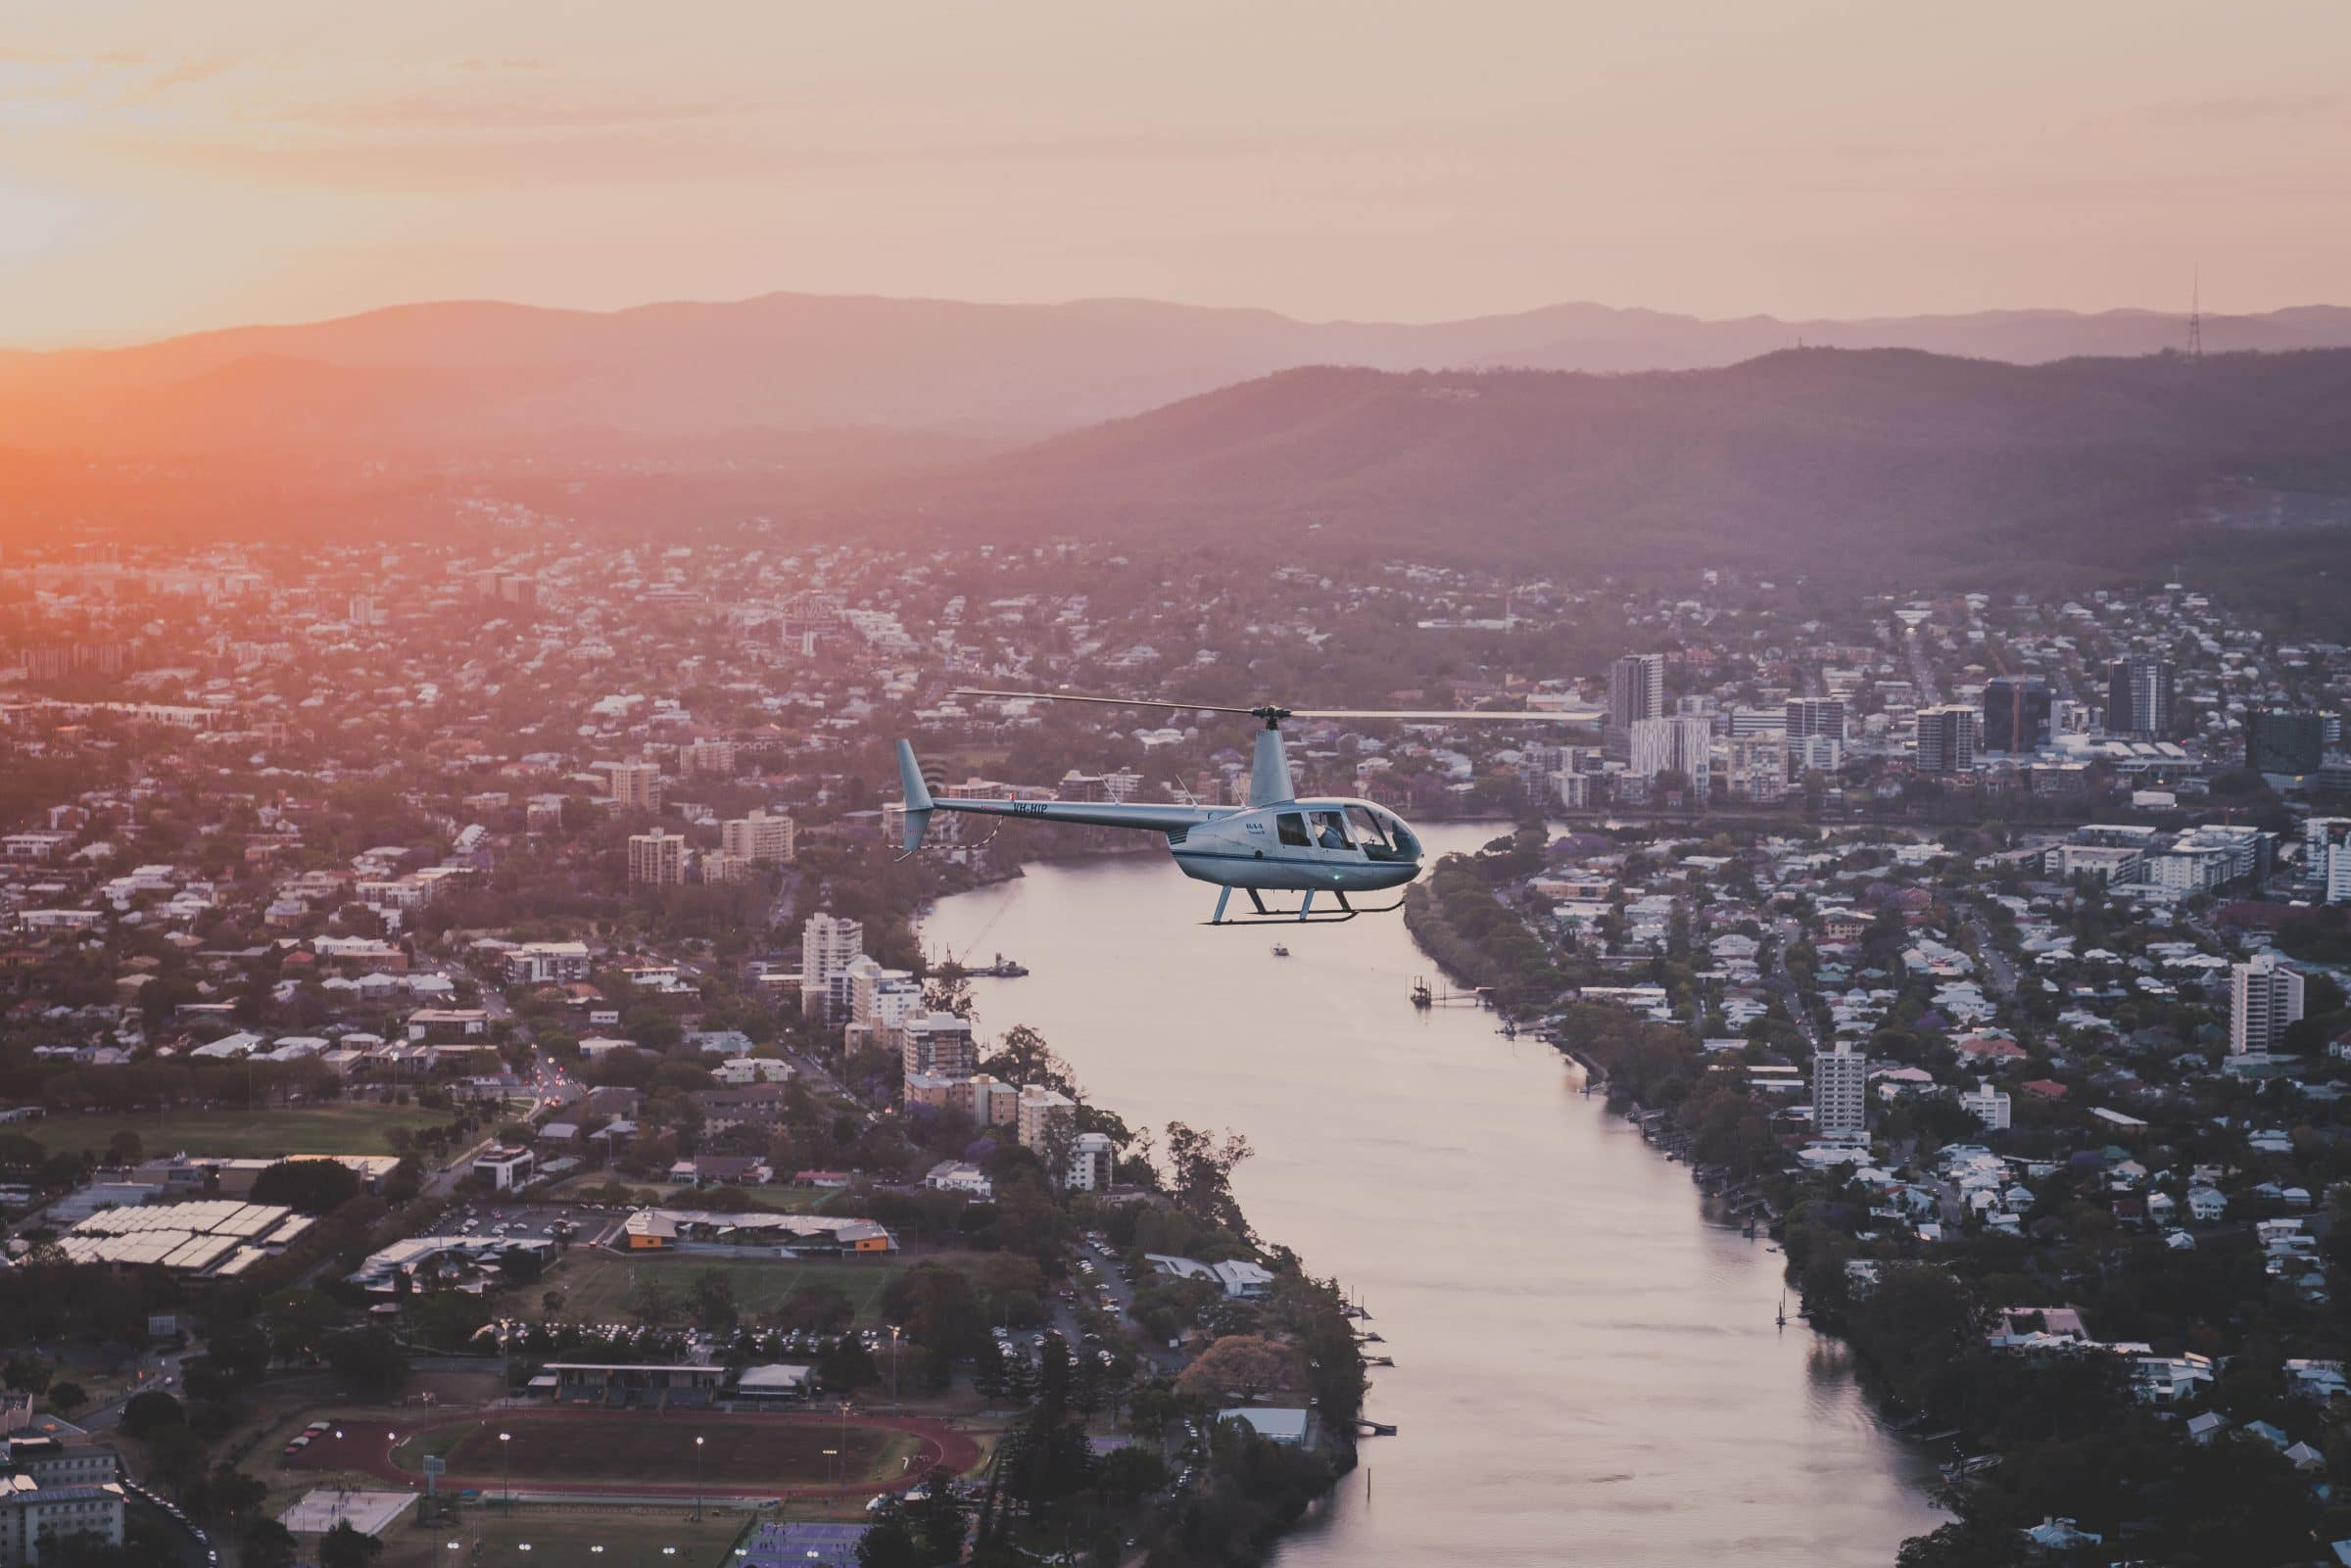 Helicopter at Sunset Brisbane